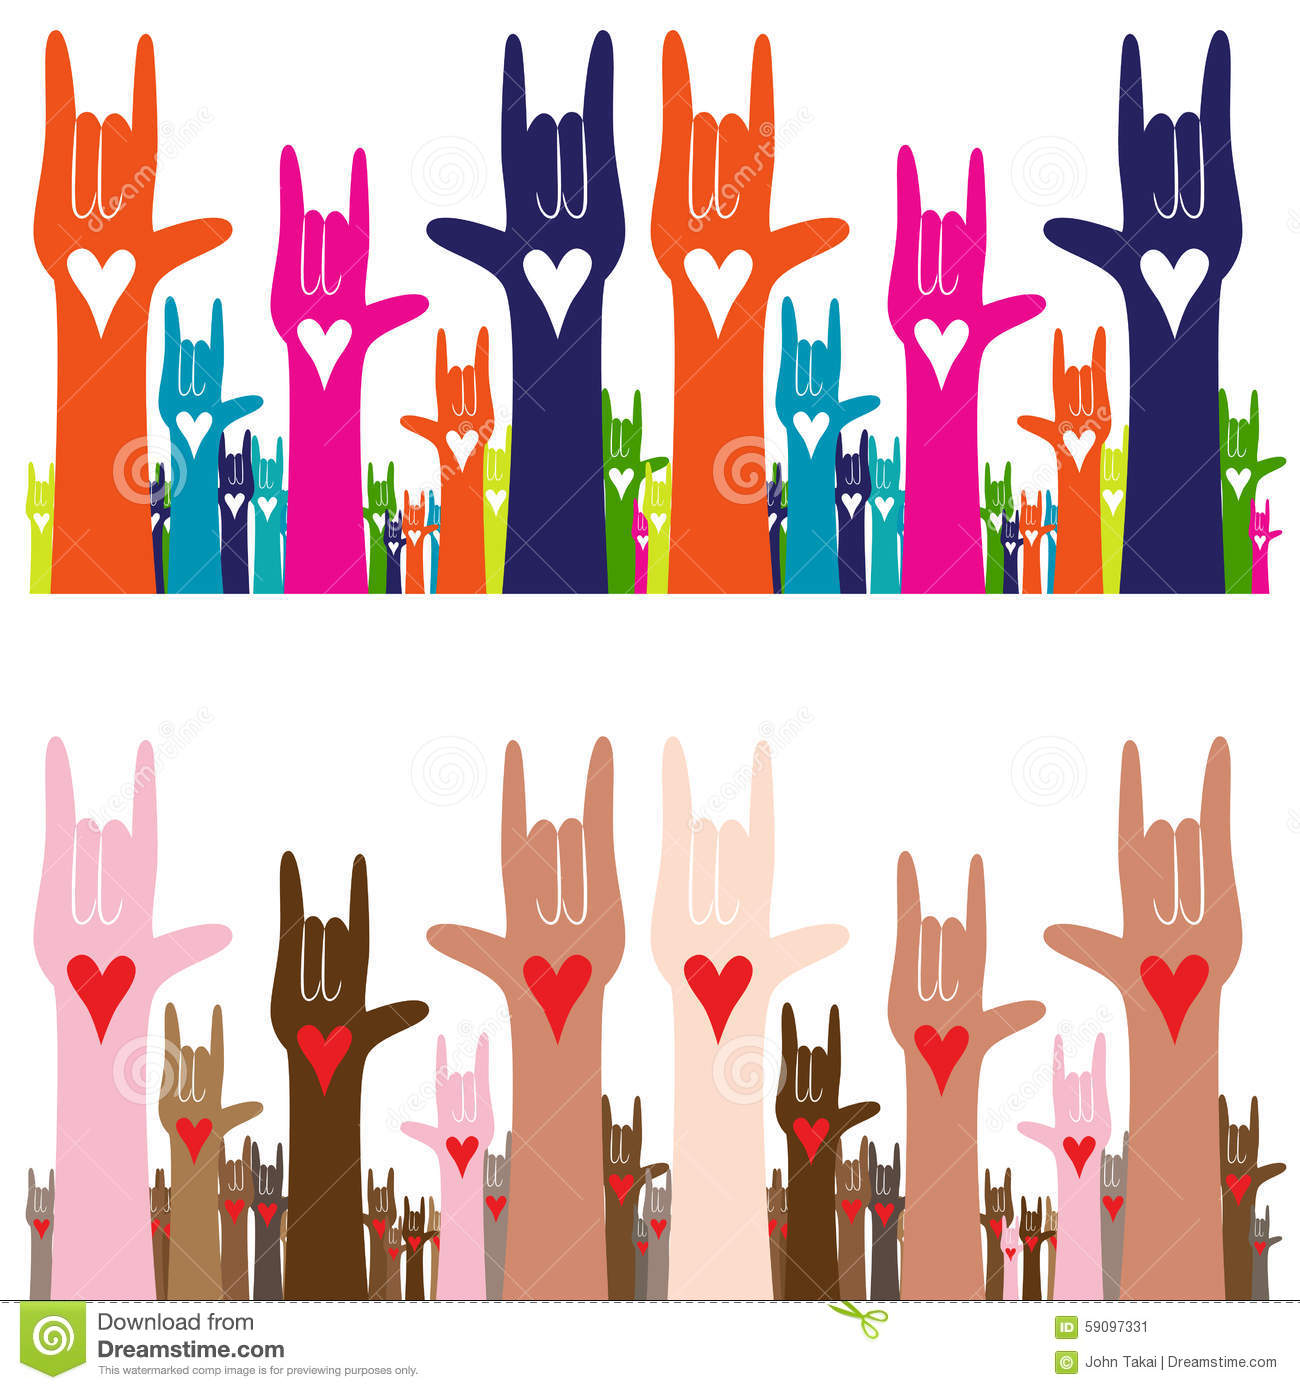 Sign language clipart i love banner royalty free library I love you hand sign clipart - ClipartFest banner royalty free library